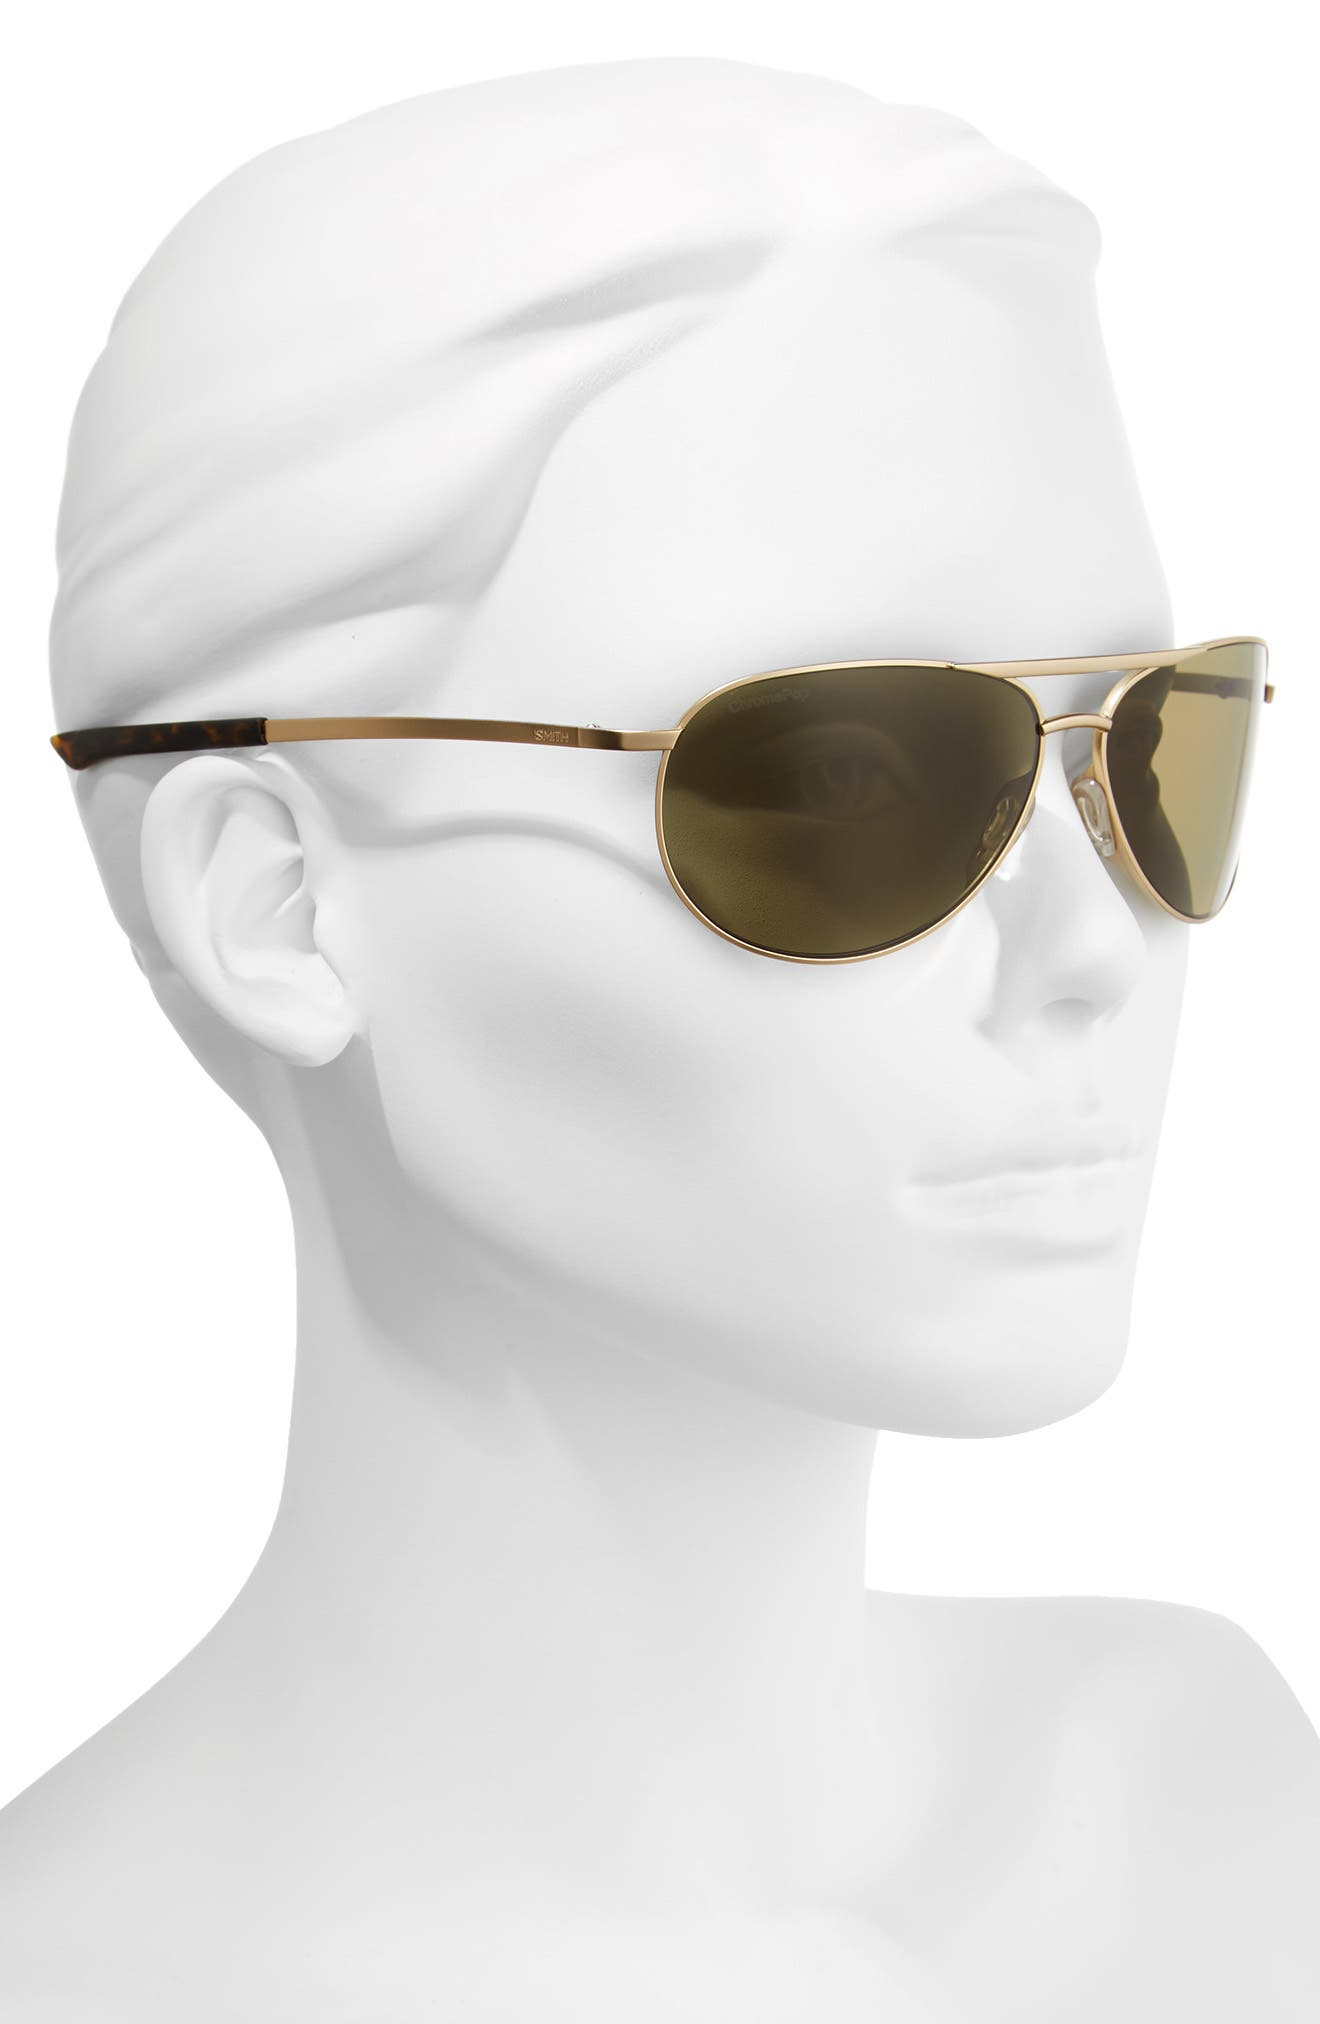 Serpico Slim 2.0 60mm ChromaPop Polarized Aviator Sunglasses,                             Alternate thumbnail 2, color,                             712